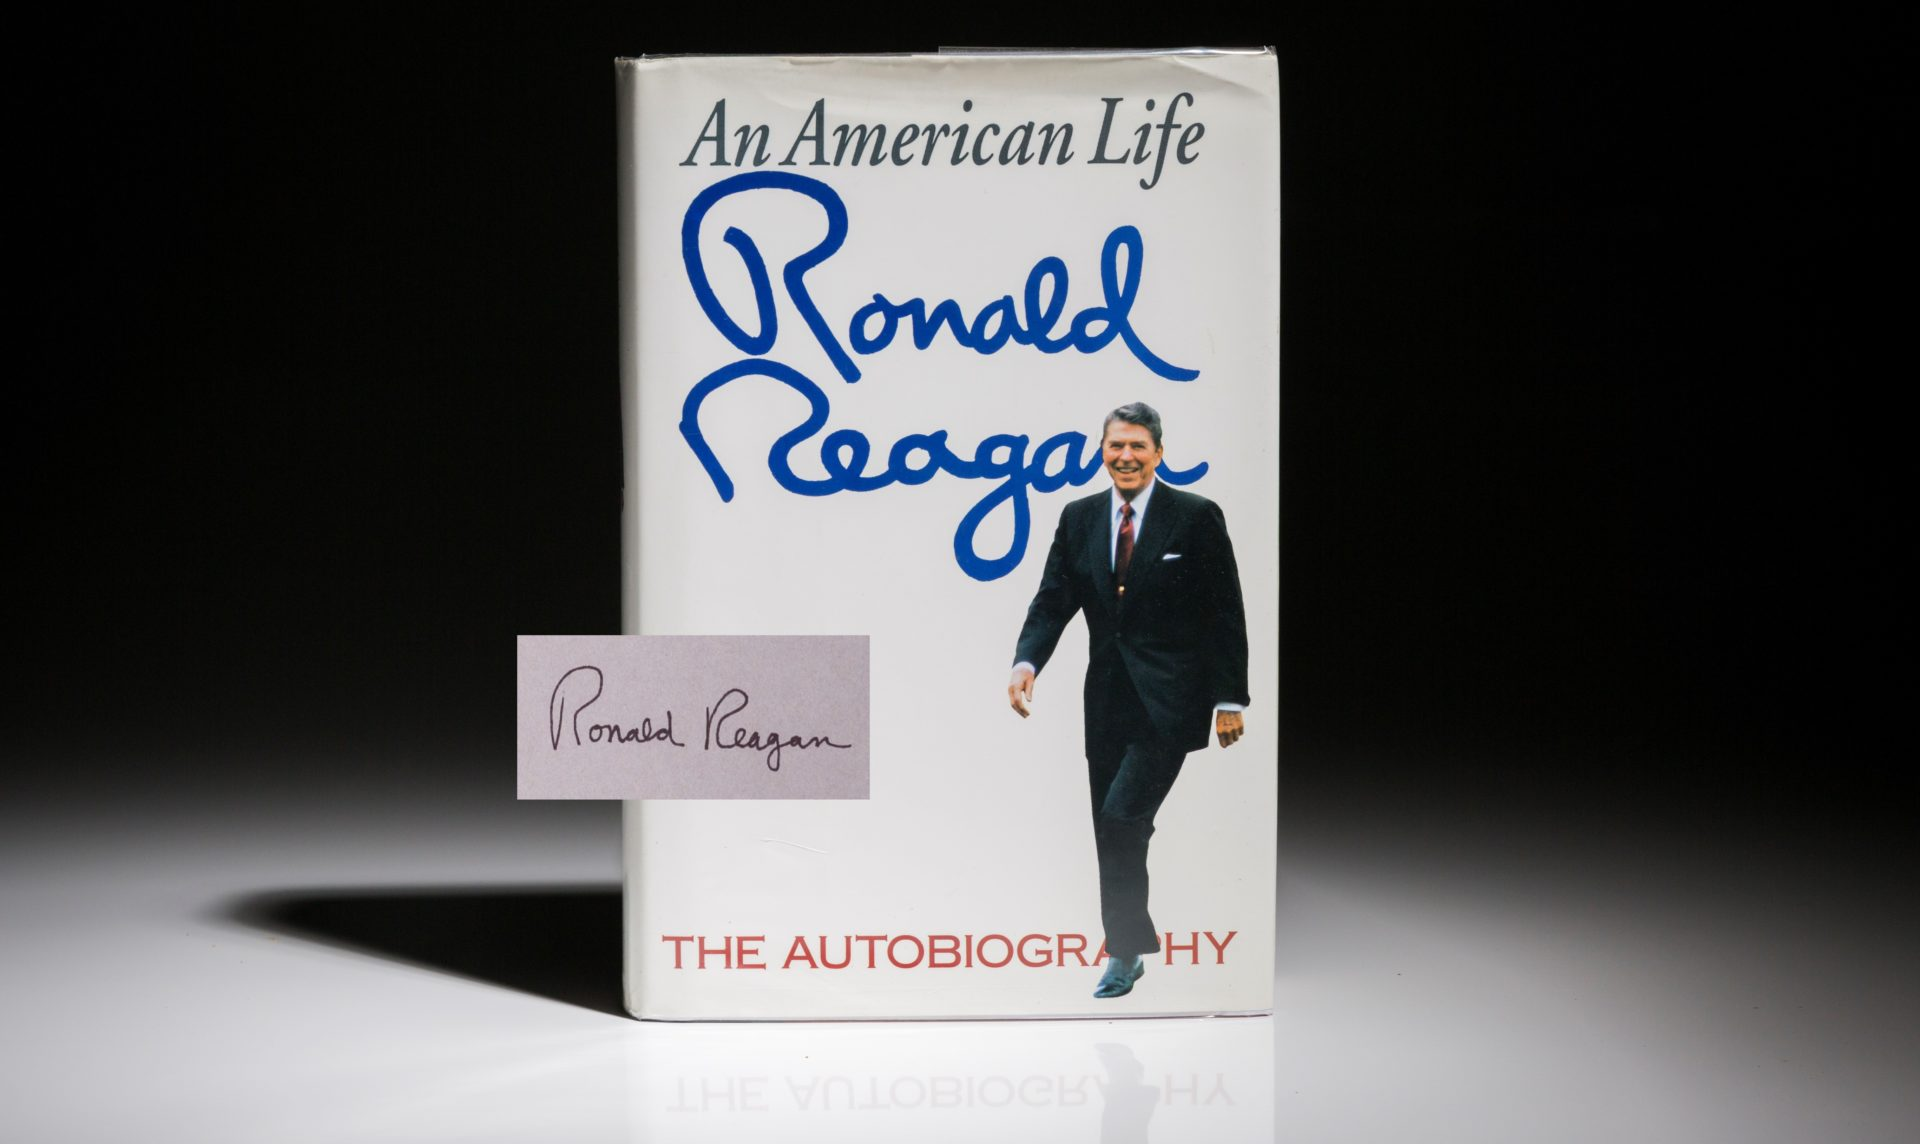 An American Life by President Ronald Reagan.